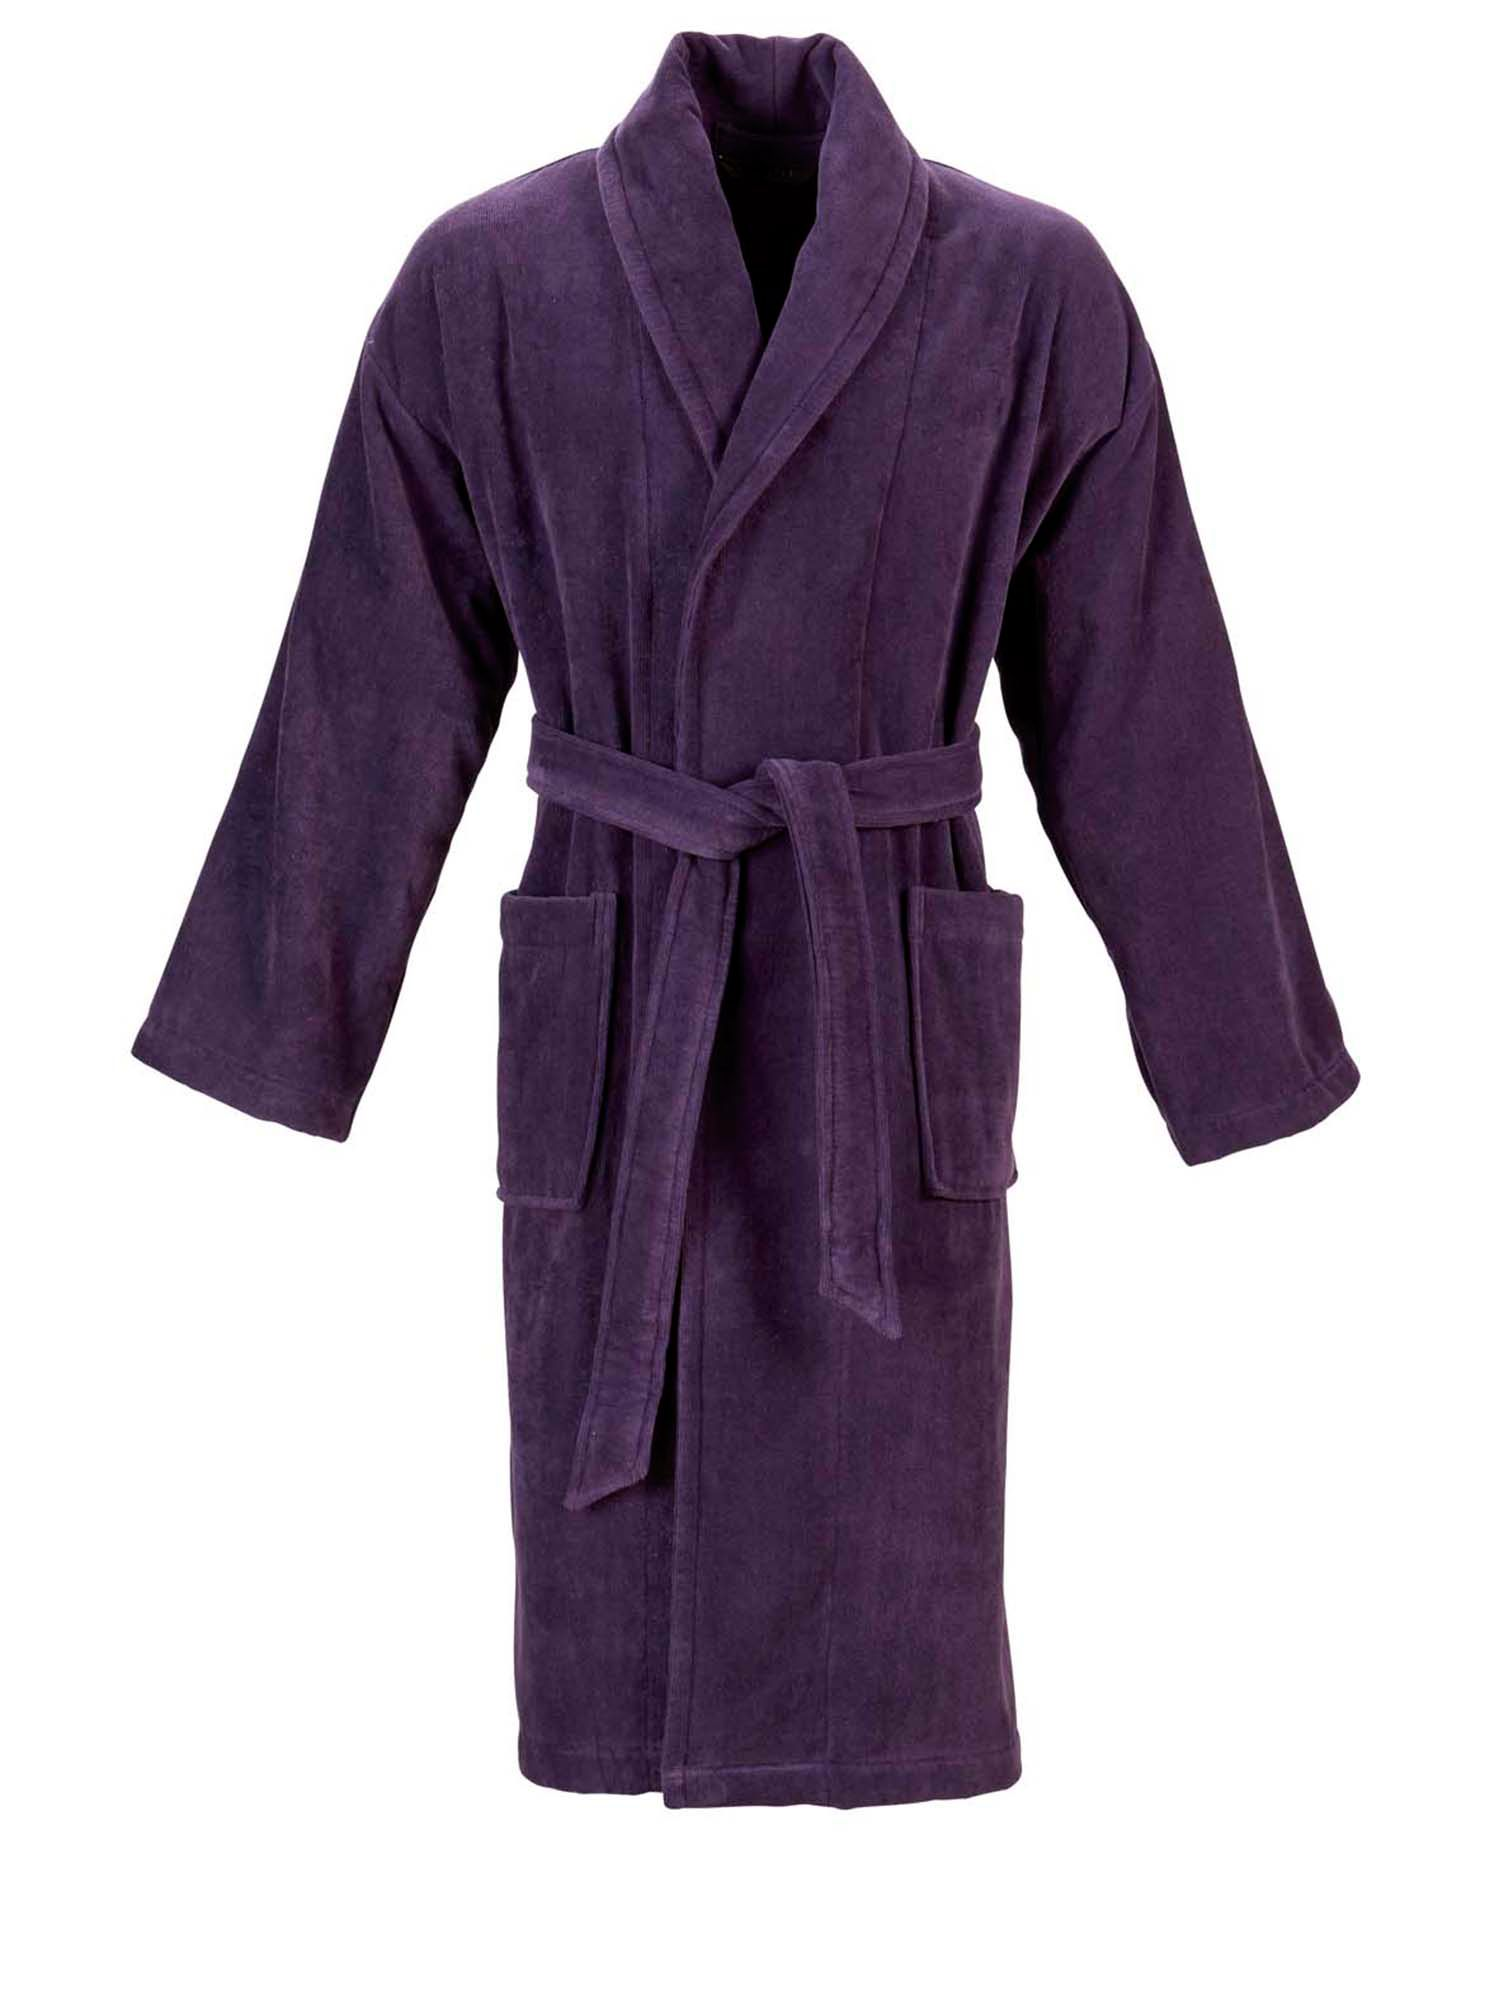 Christy Supreme robe large thistle